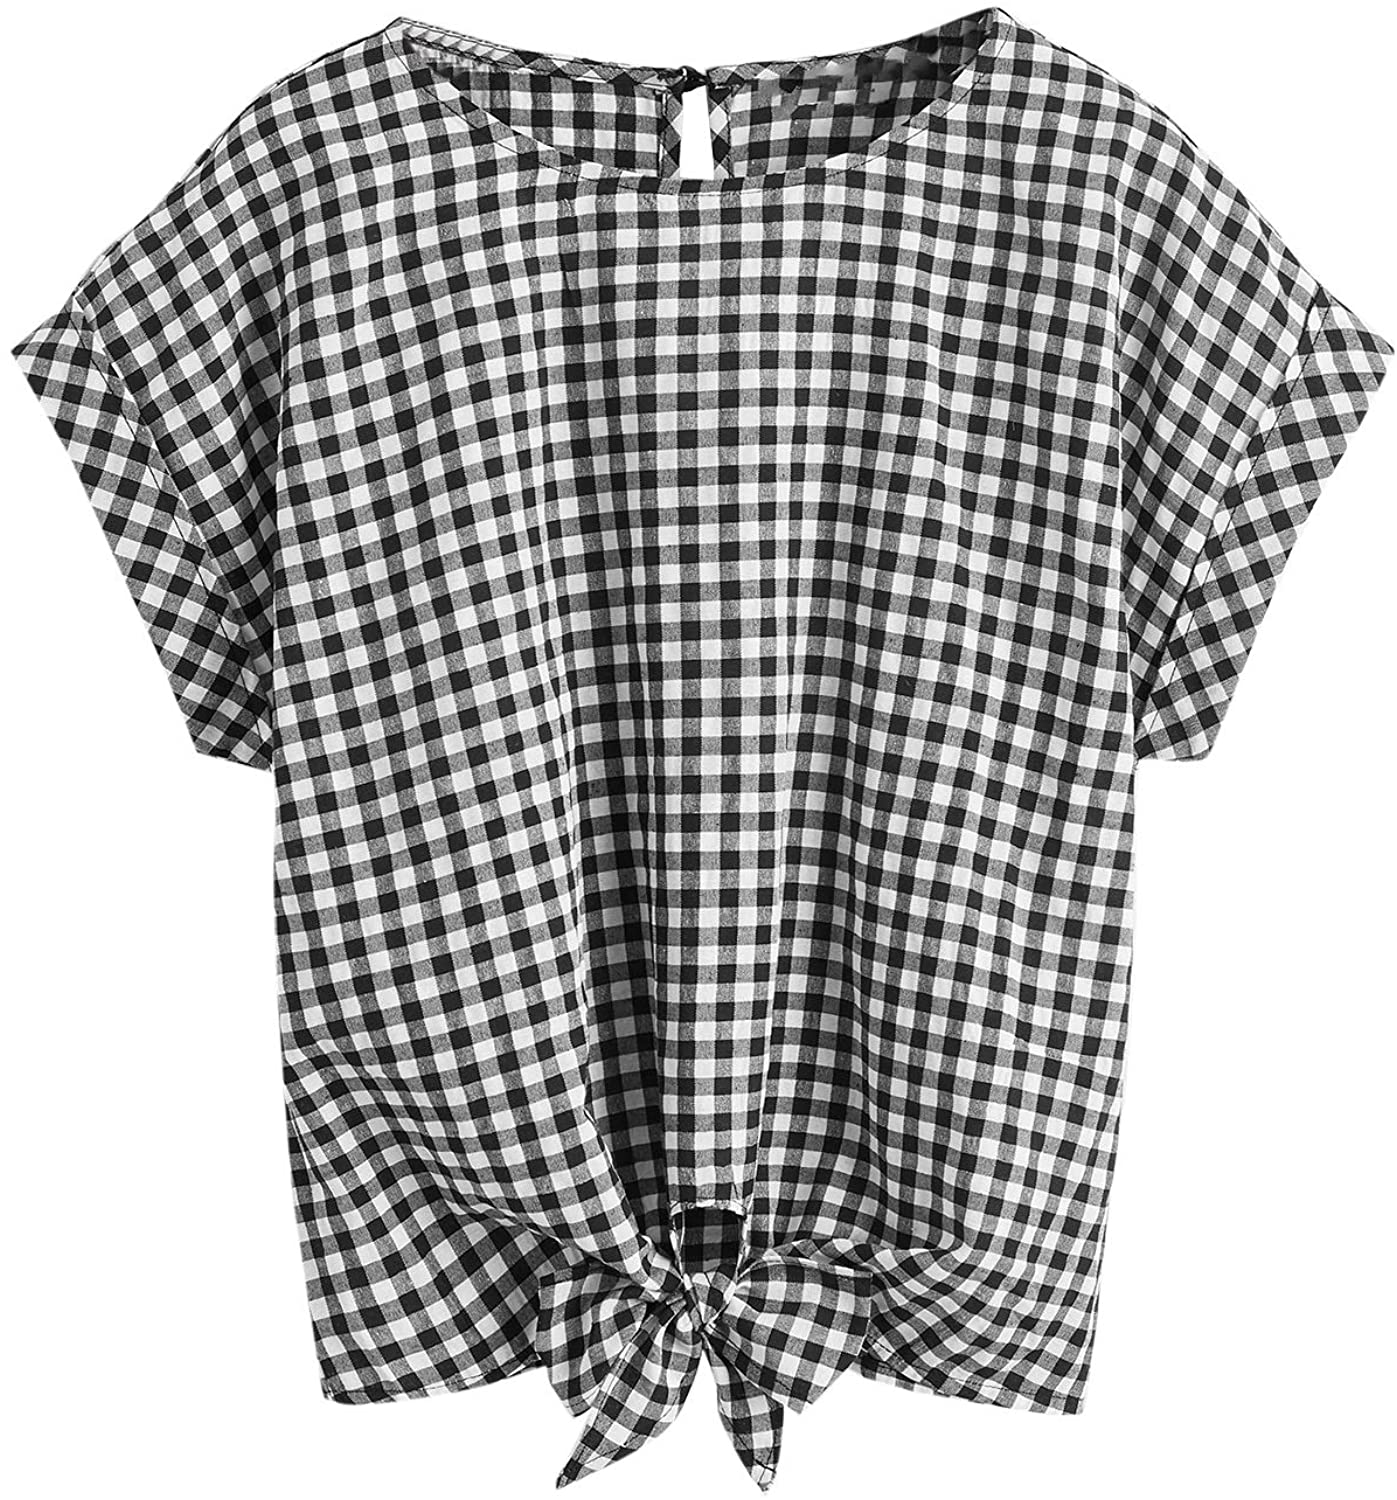 Romwe Women's Casual Plaid Batwing Short Sleeve Knot Front Loose Blouse Tops Shirts